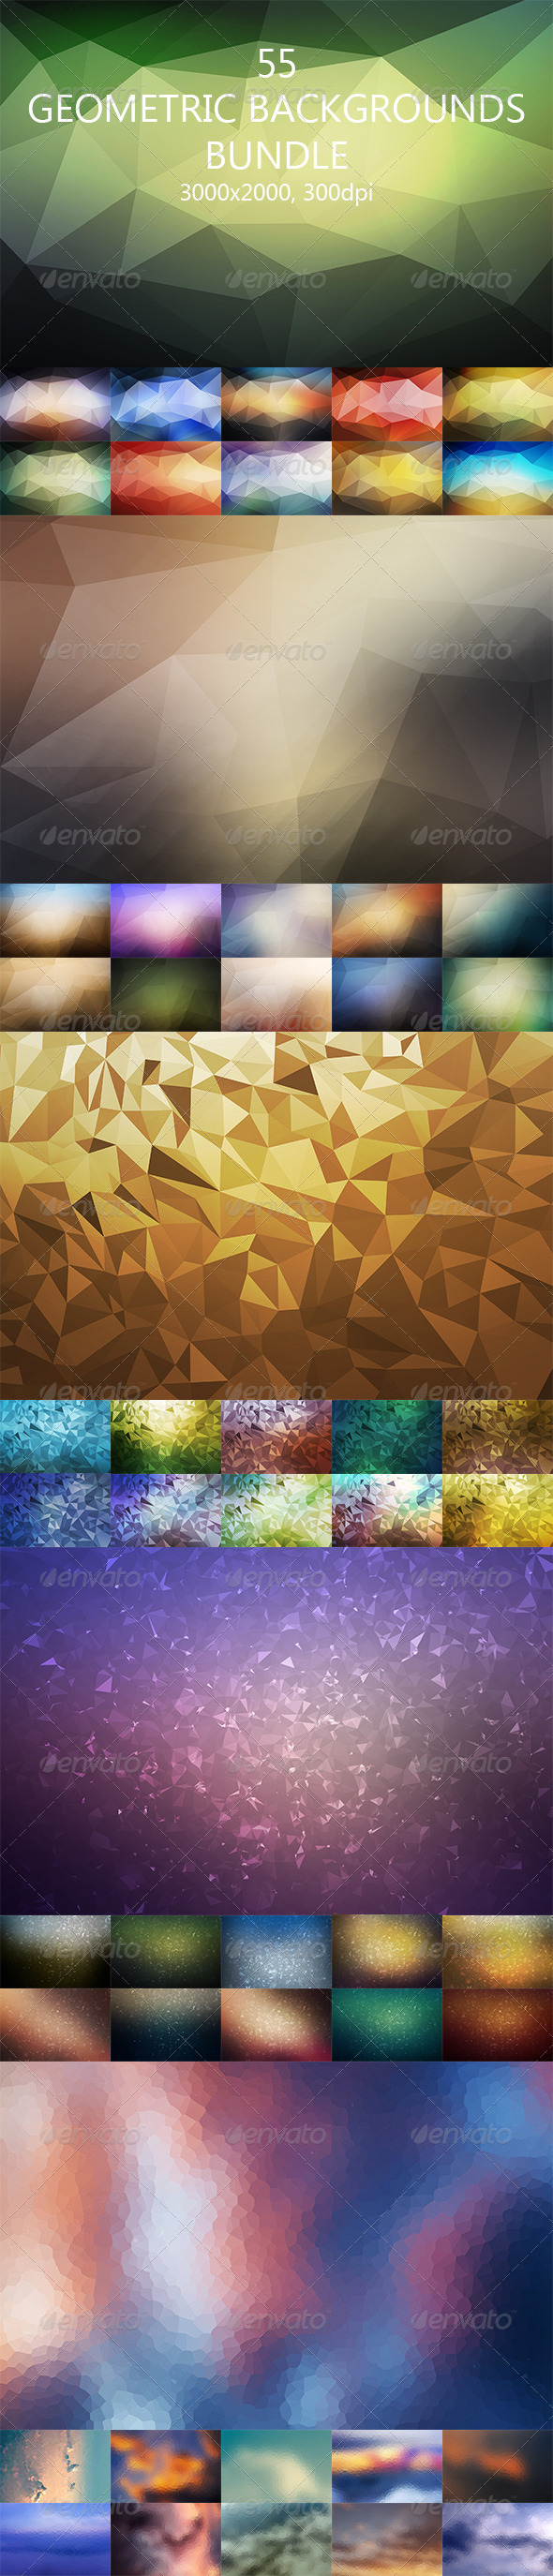 GraphicRiver 55 Geometric Backgrounds Bundle 8004446